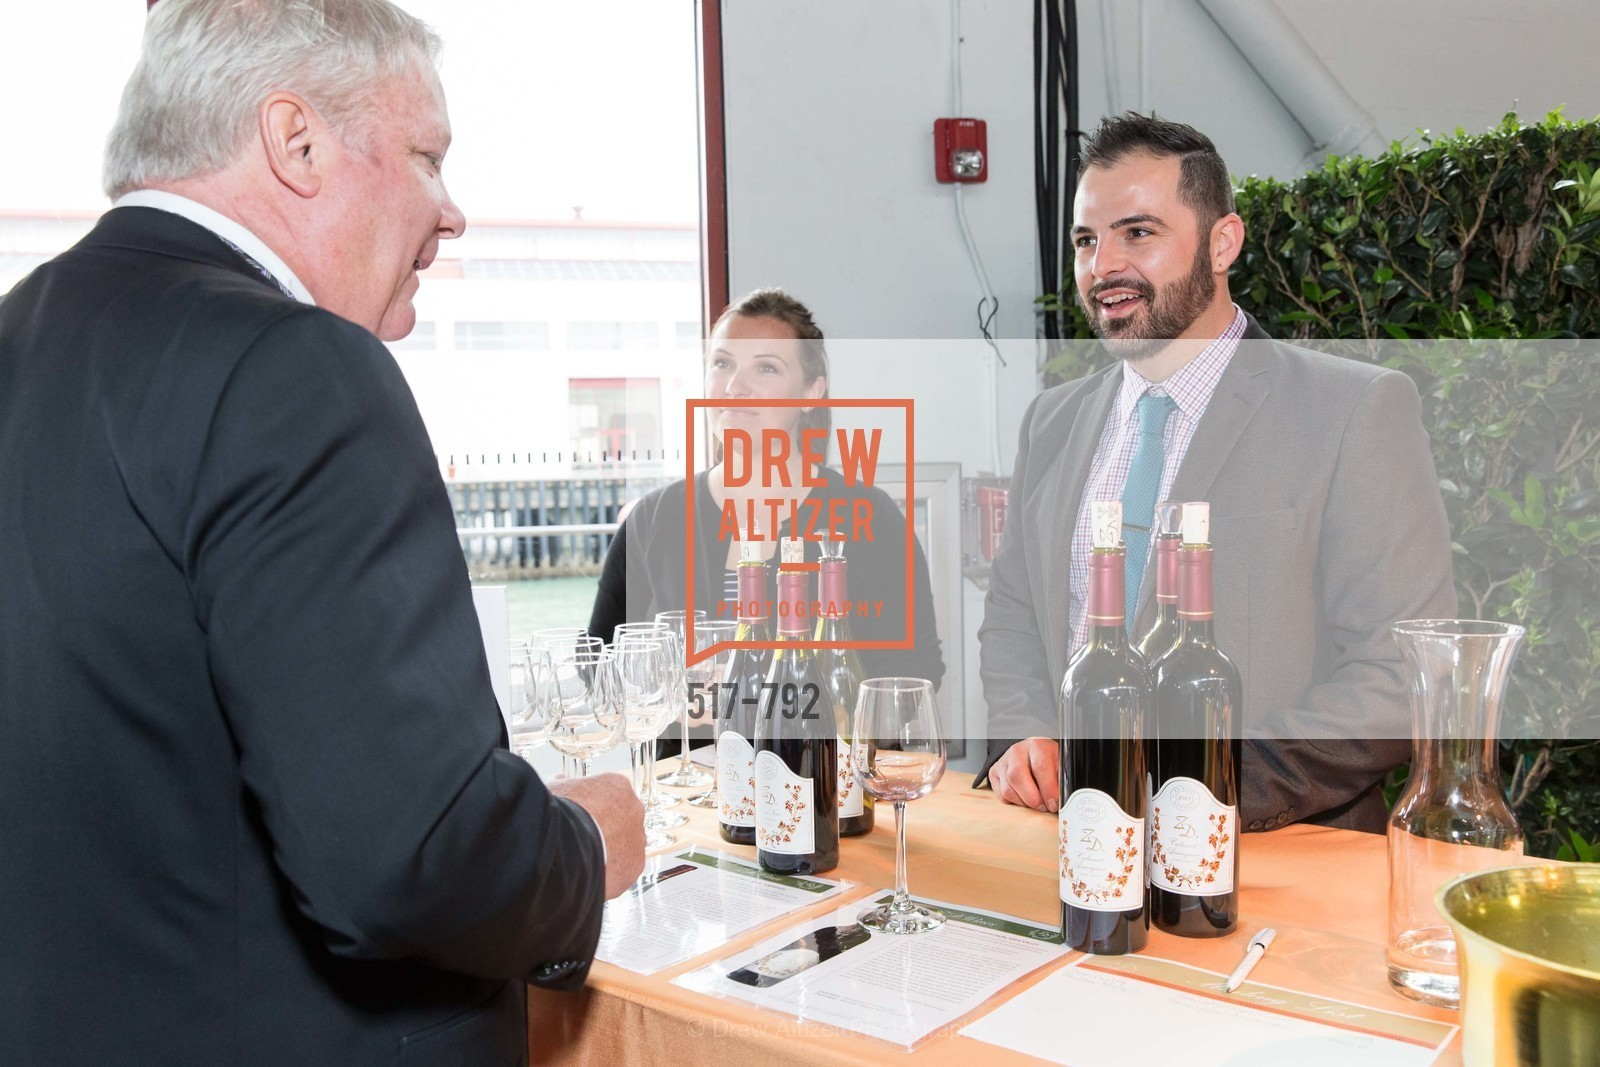 Z.D. Wine, MEALS ON WHEELS OF SAN FRANCISCO'S 28th Annual Star Chefs and Vintners Gala, US, April 19th, 2015,Drew Altizer, Drew Altizer Photography, full-service agency, private events, San Francisco photographer, photographer california